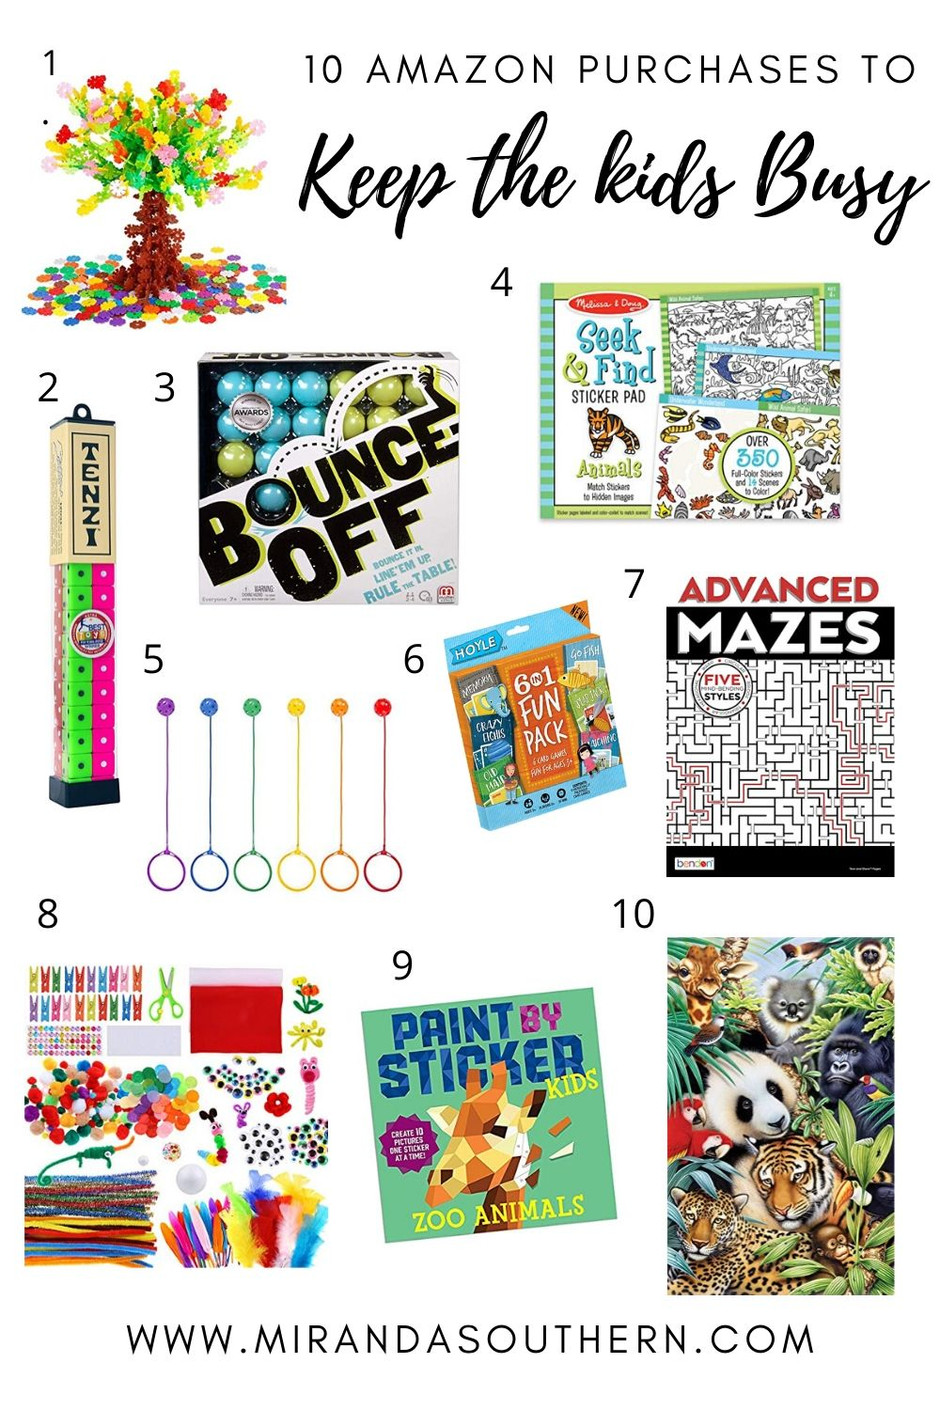 10 Amazon Purchases to Keep the Kids Busy